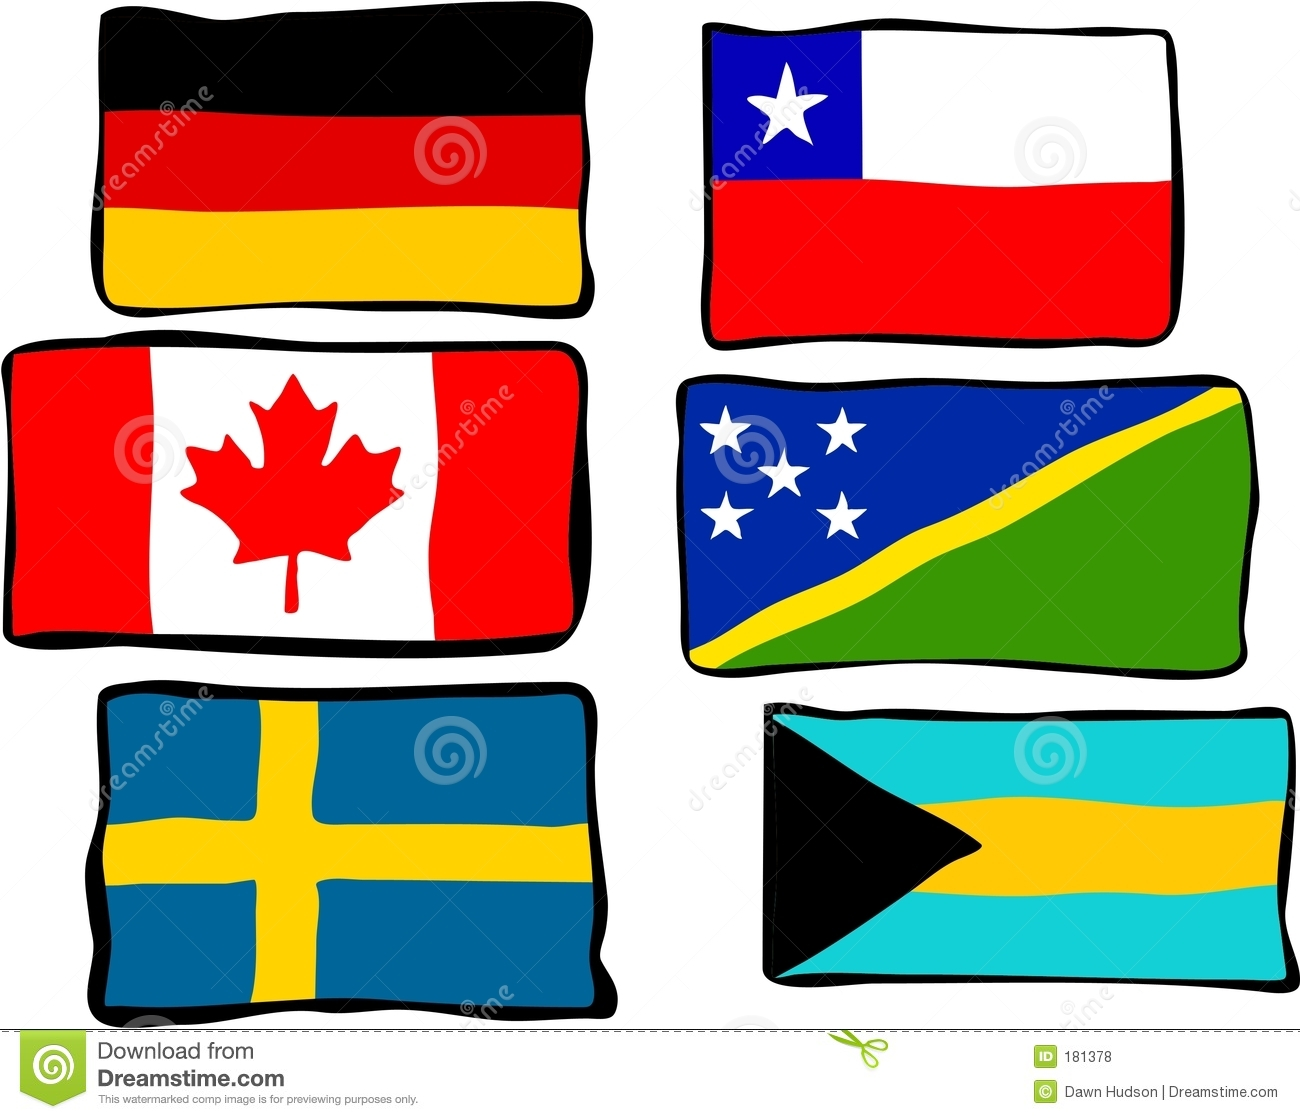 clipart flags - photo #42